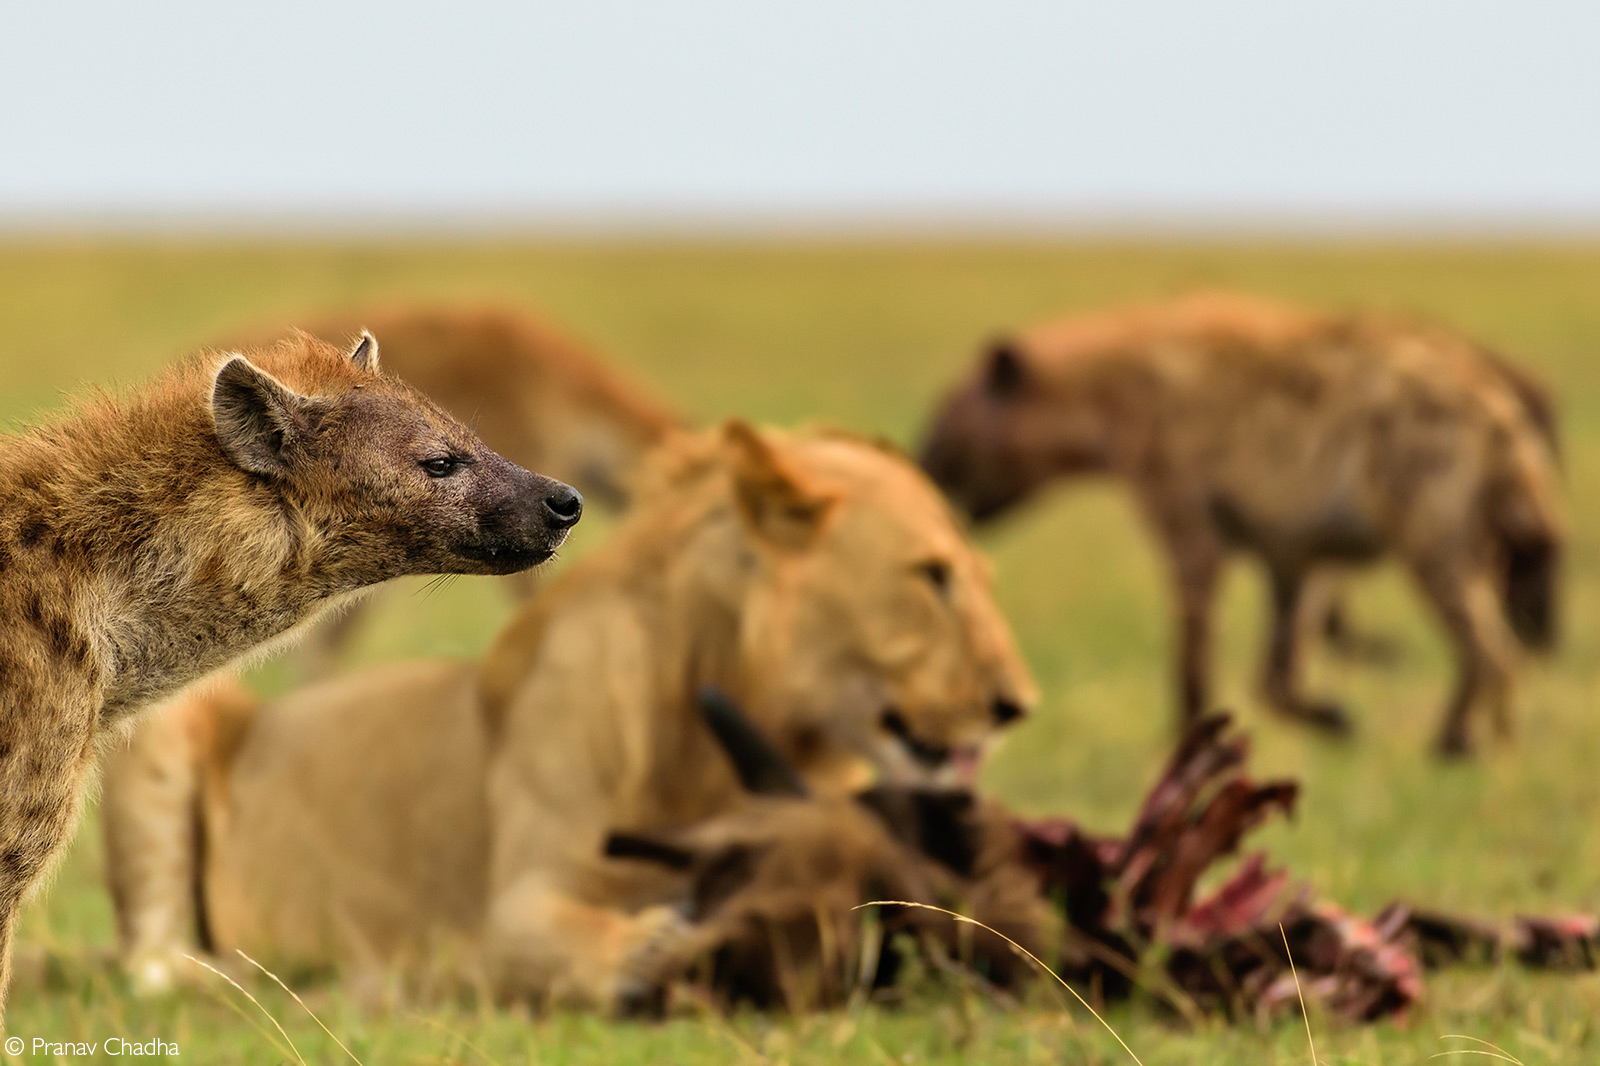 A sub-adult lion comes in to steal a kill made by spotted hyenas, Maasai Mara National Reserve, Kenya © Pranav Chadha